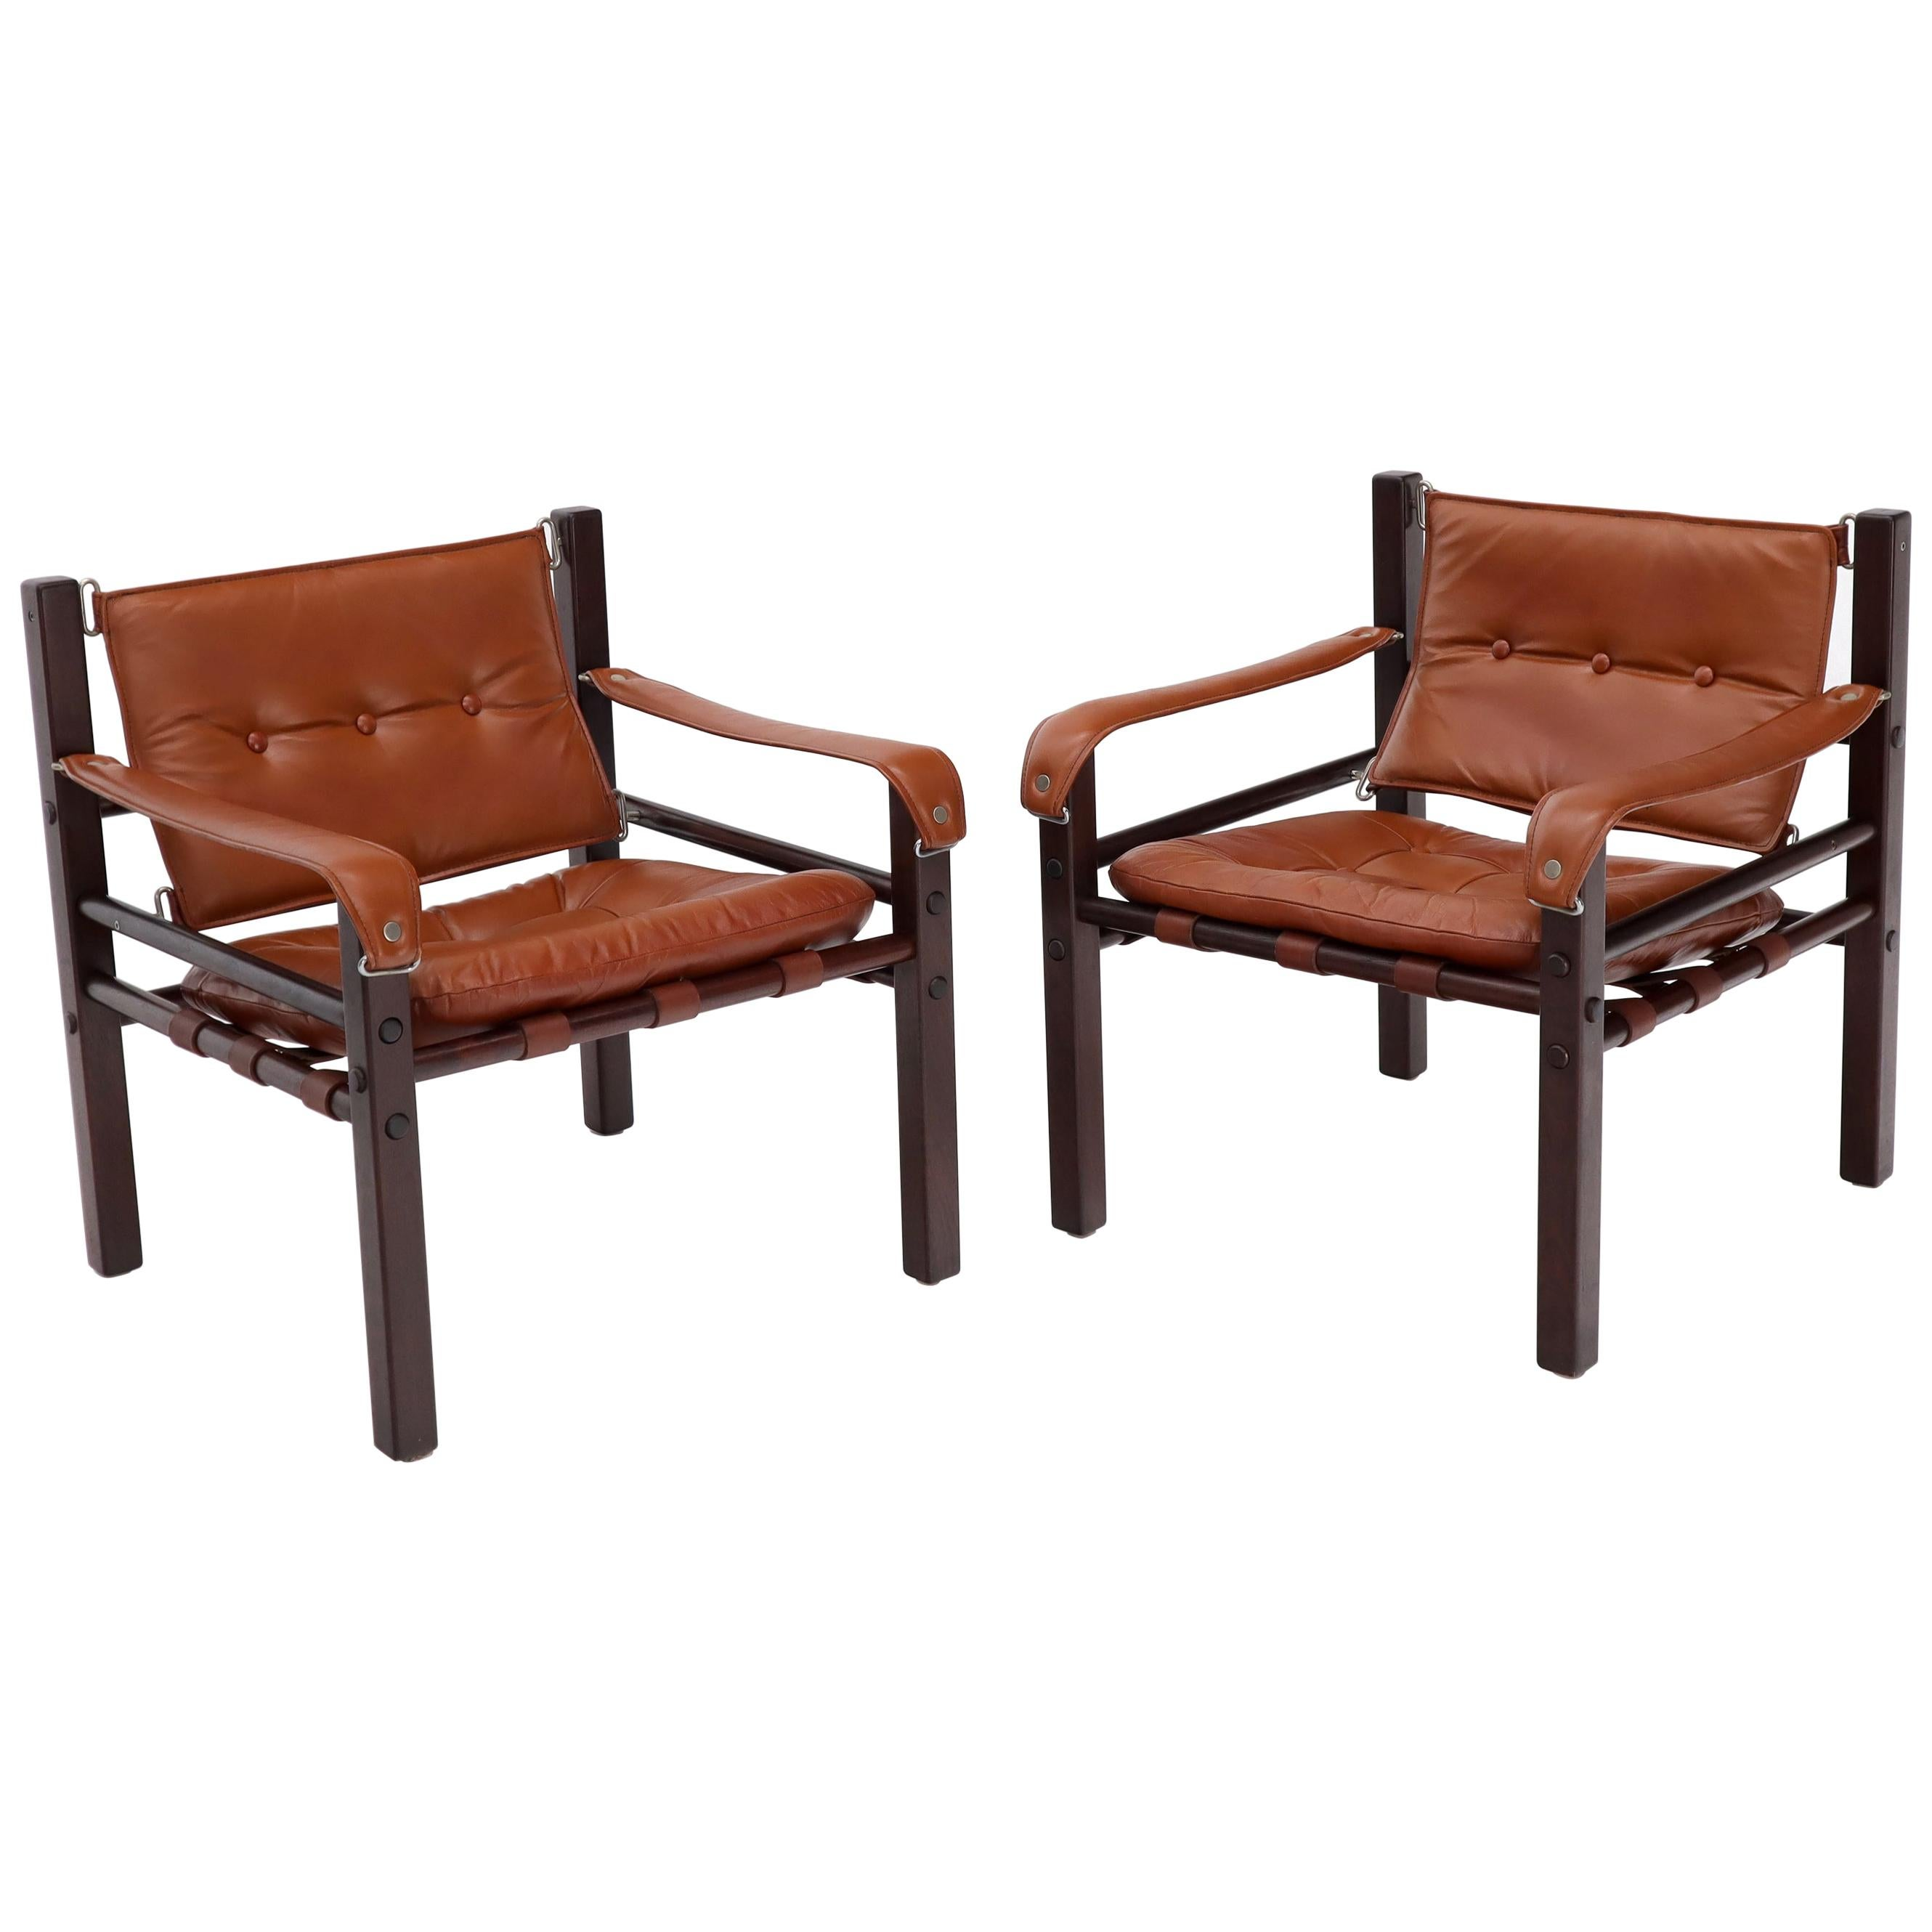 Pair of Rosewood Brown Leather Upholstery Safari Sling Chairs